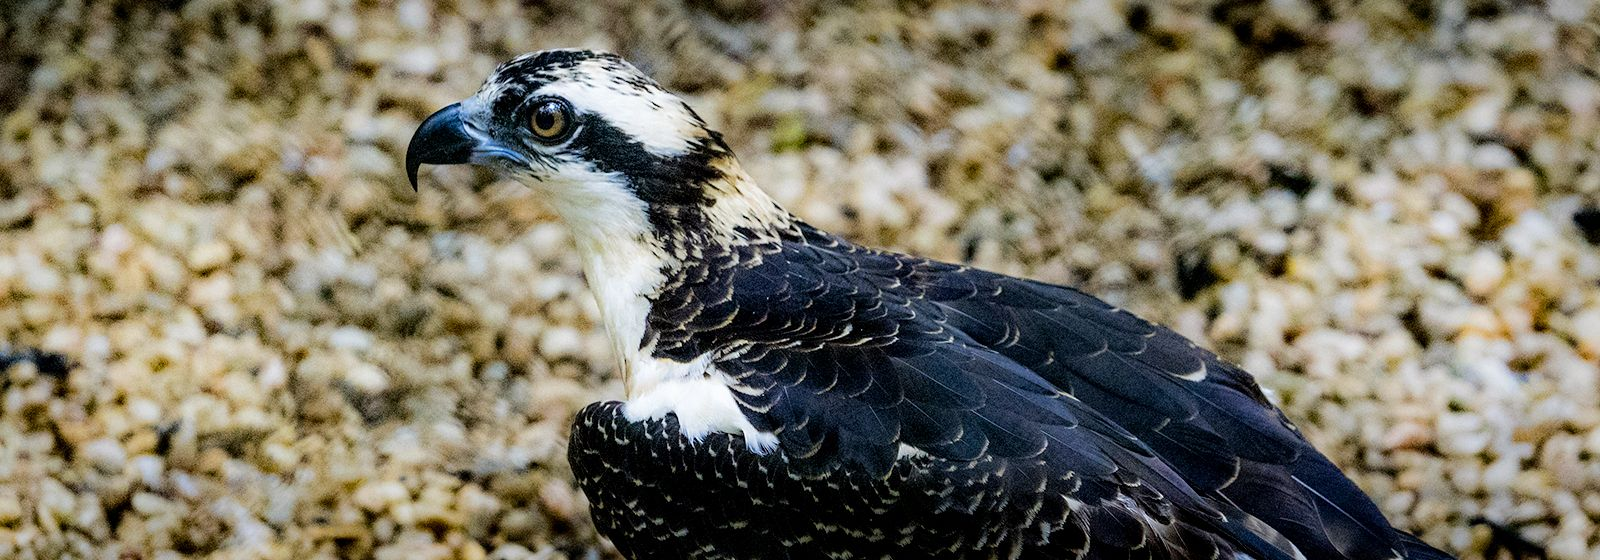 Kip, kip, hooray: The osprey has a name